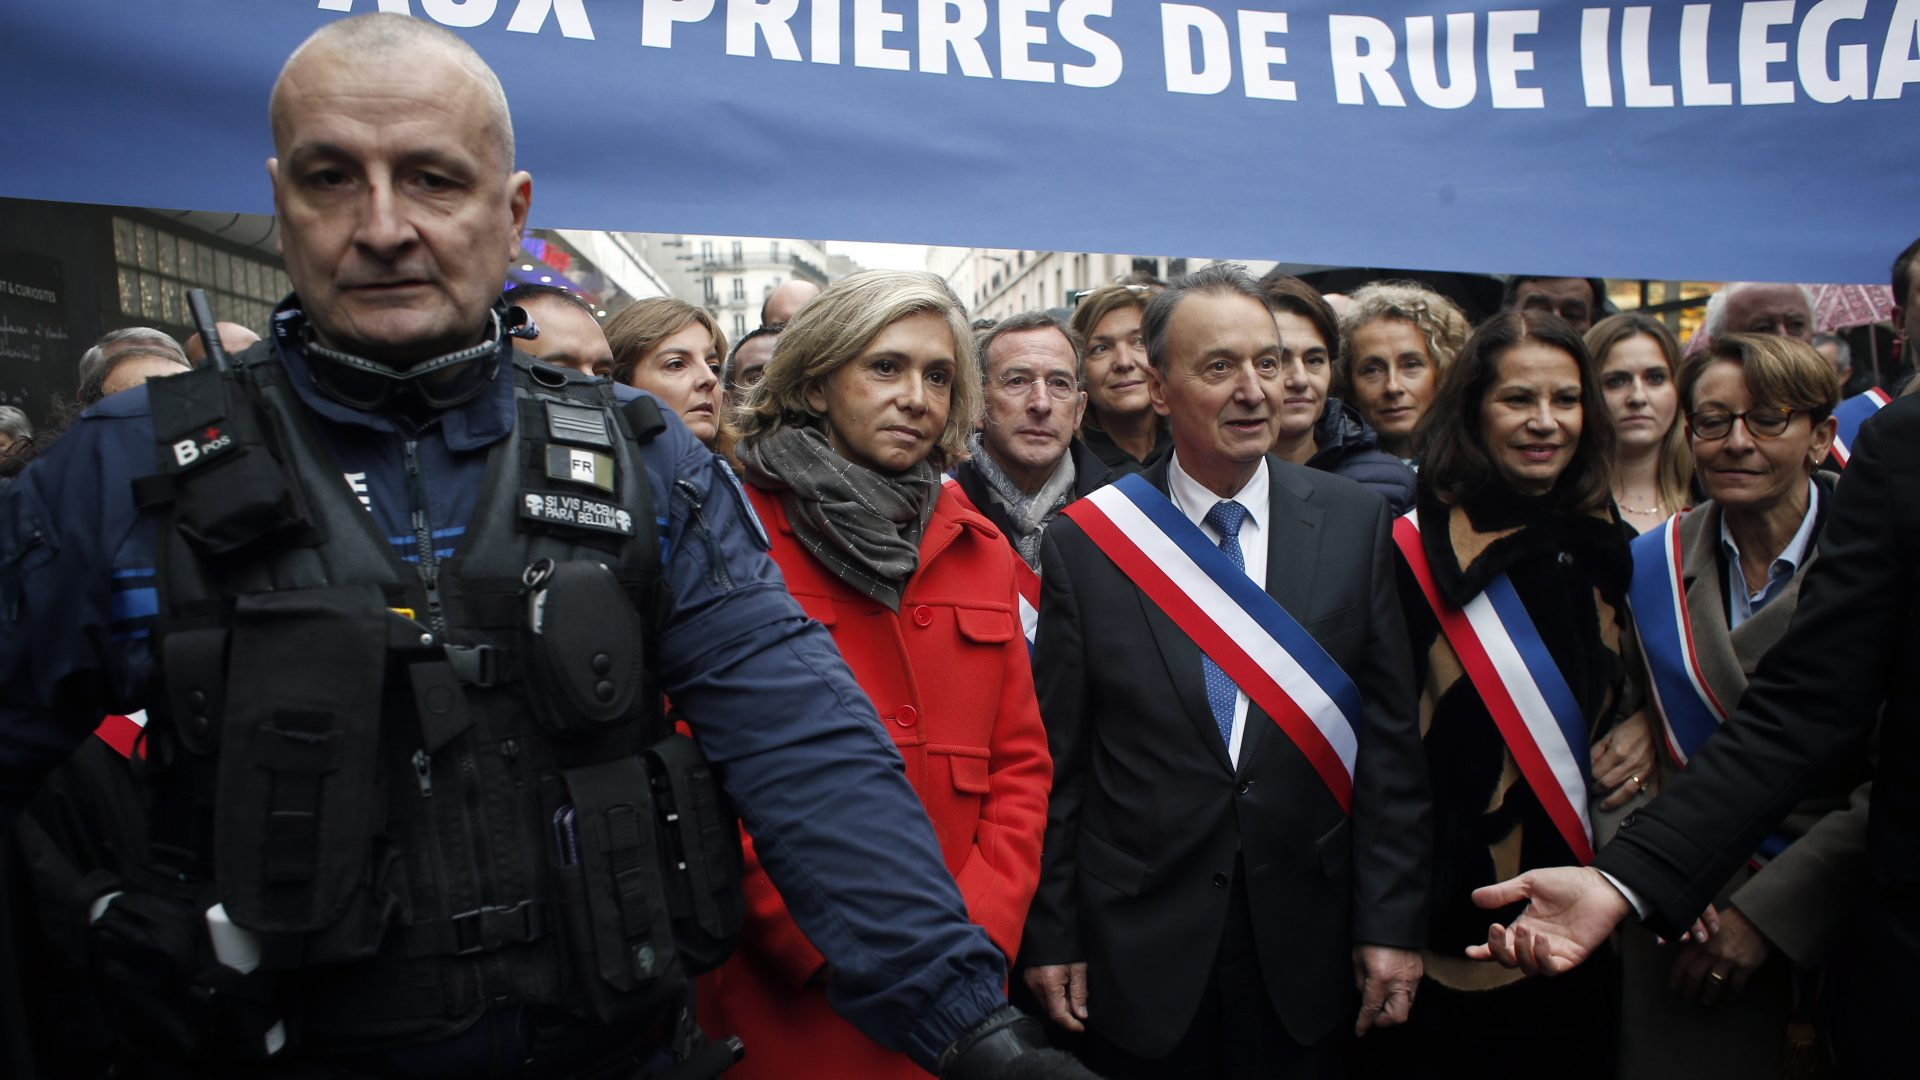 Clichy la Garenne's mayor Remi Muzueau, centre right, and President of the Regional Council of the Ile-de-France region Valerie Pecresse, centre left, demonstrate against Muslim street prayers, in the Paris suburb of Clichy la Garenne